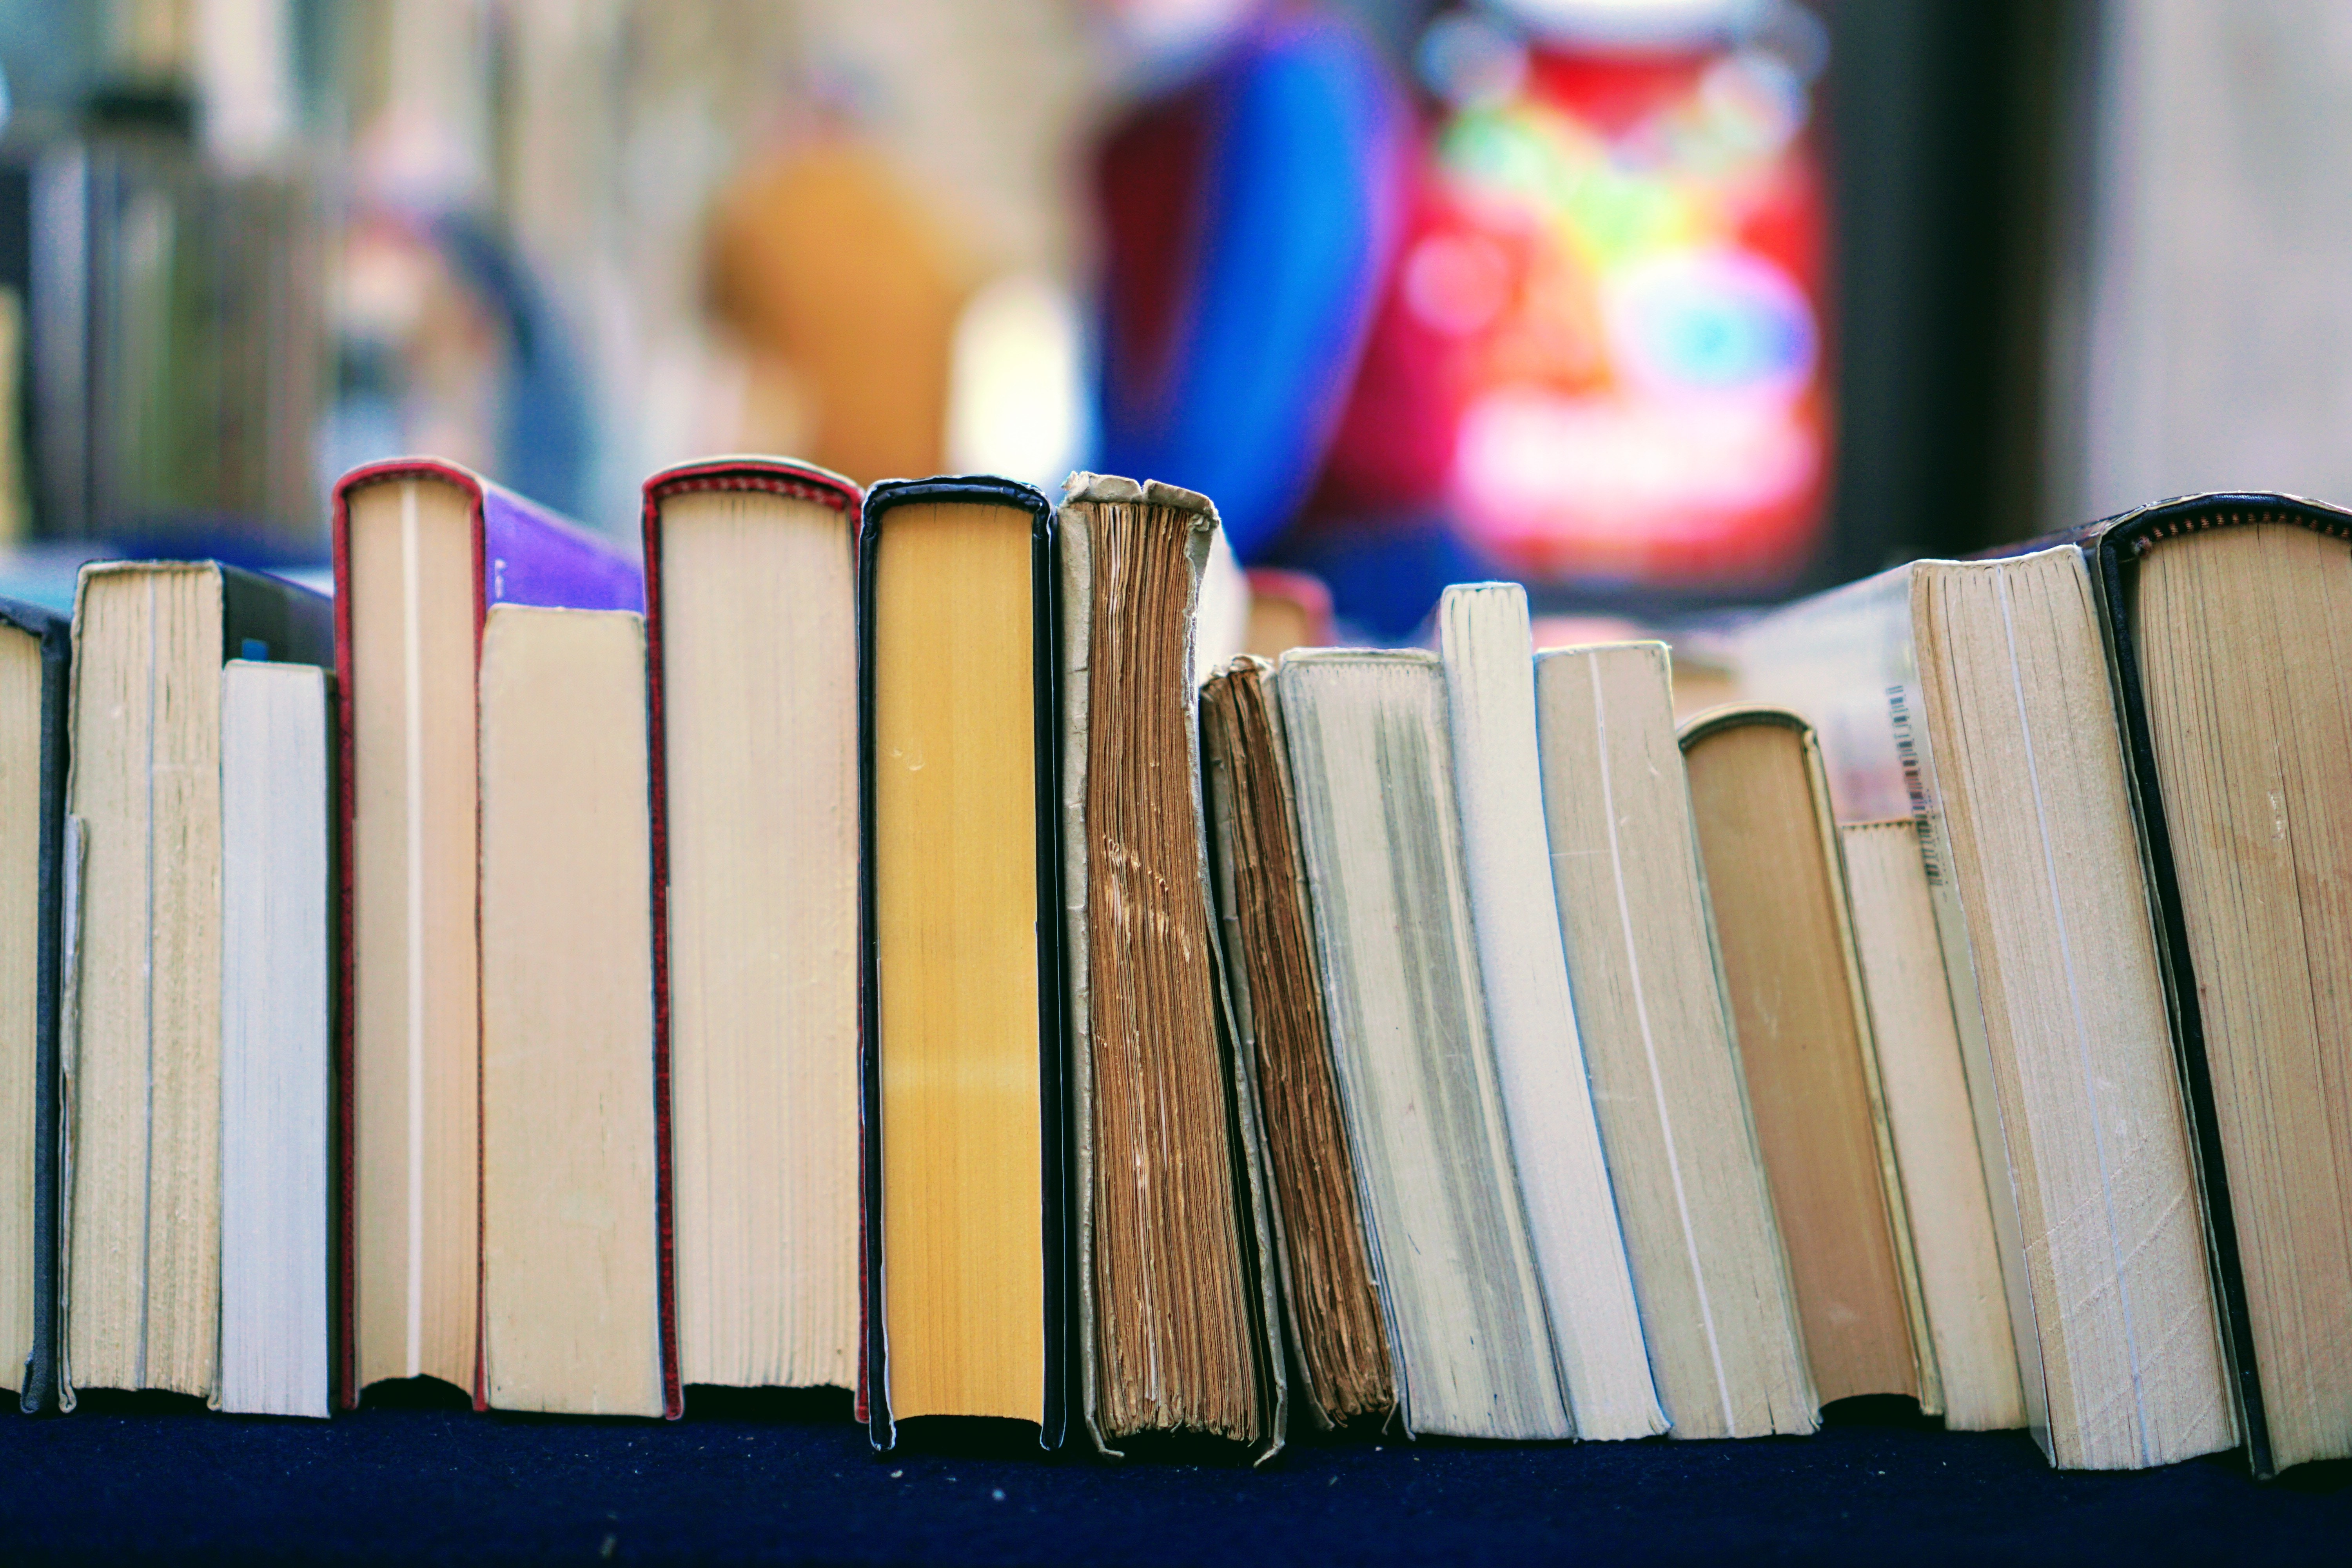 By Teachers, For Teachers: A Summer Reading List